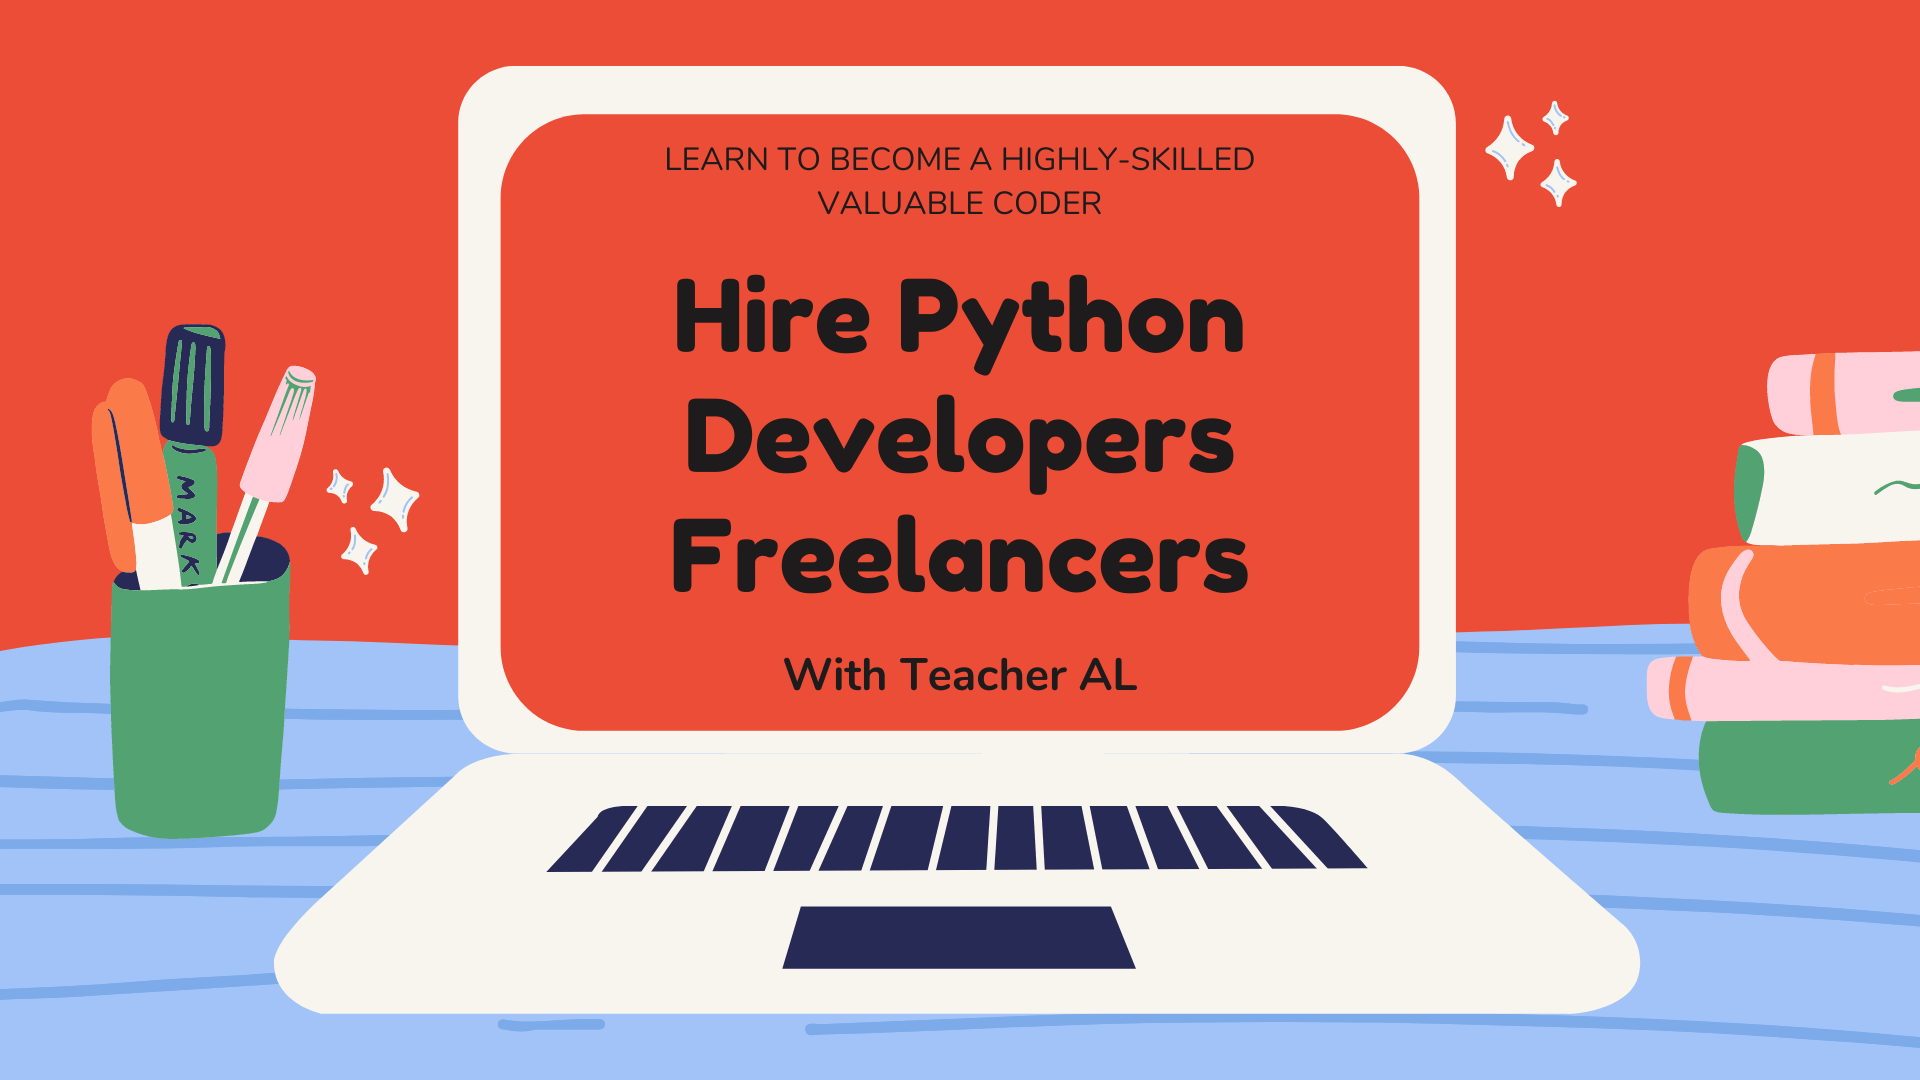 Hire Python Developer Freelancers